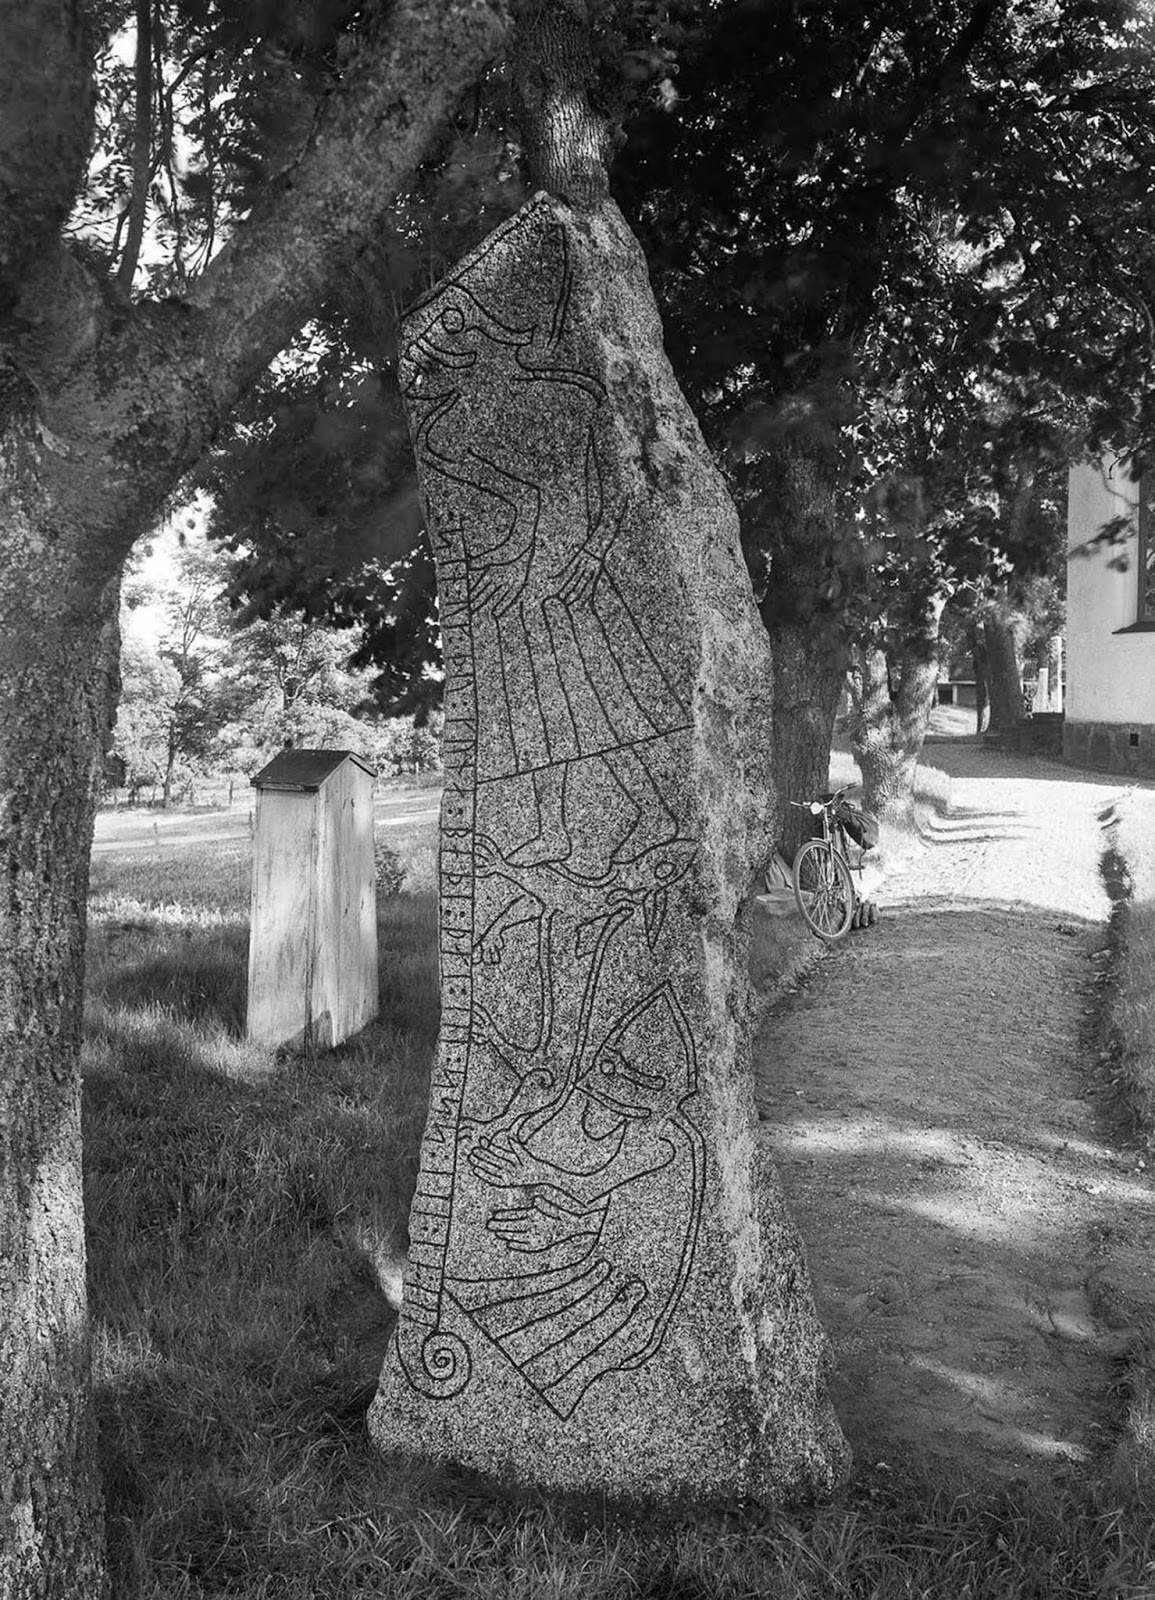 A runestone in Ledberg, Östergötland. The stone has mythological images, possibly from the Ragnarök myth, with the Fenris wolf devouring Odin. The inscription, on three sides, says,